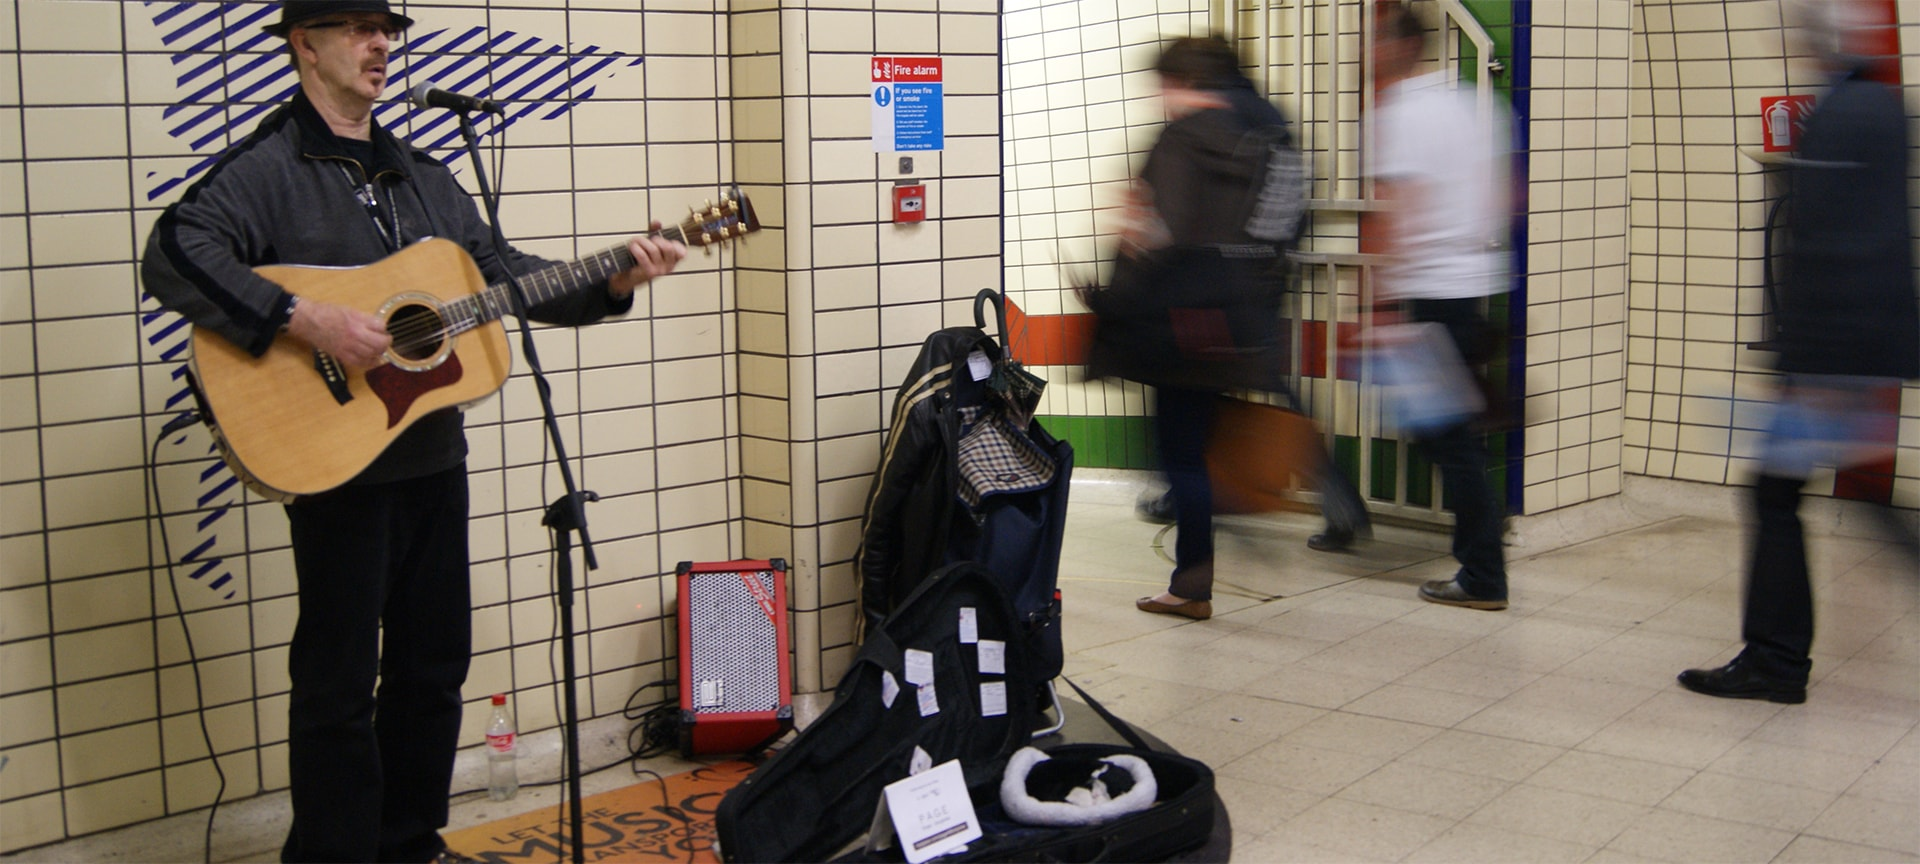 The London Underground Busking Scheme is a hit with performers and the travelling public. Passengers enjoy more than 100,000 hours of live music, performed every year by professional, talented buskers. Licensed buskers have a unique audience of around 3.5 million Tube passengers every day.